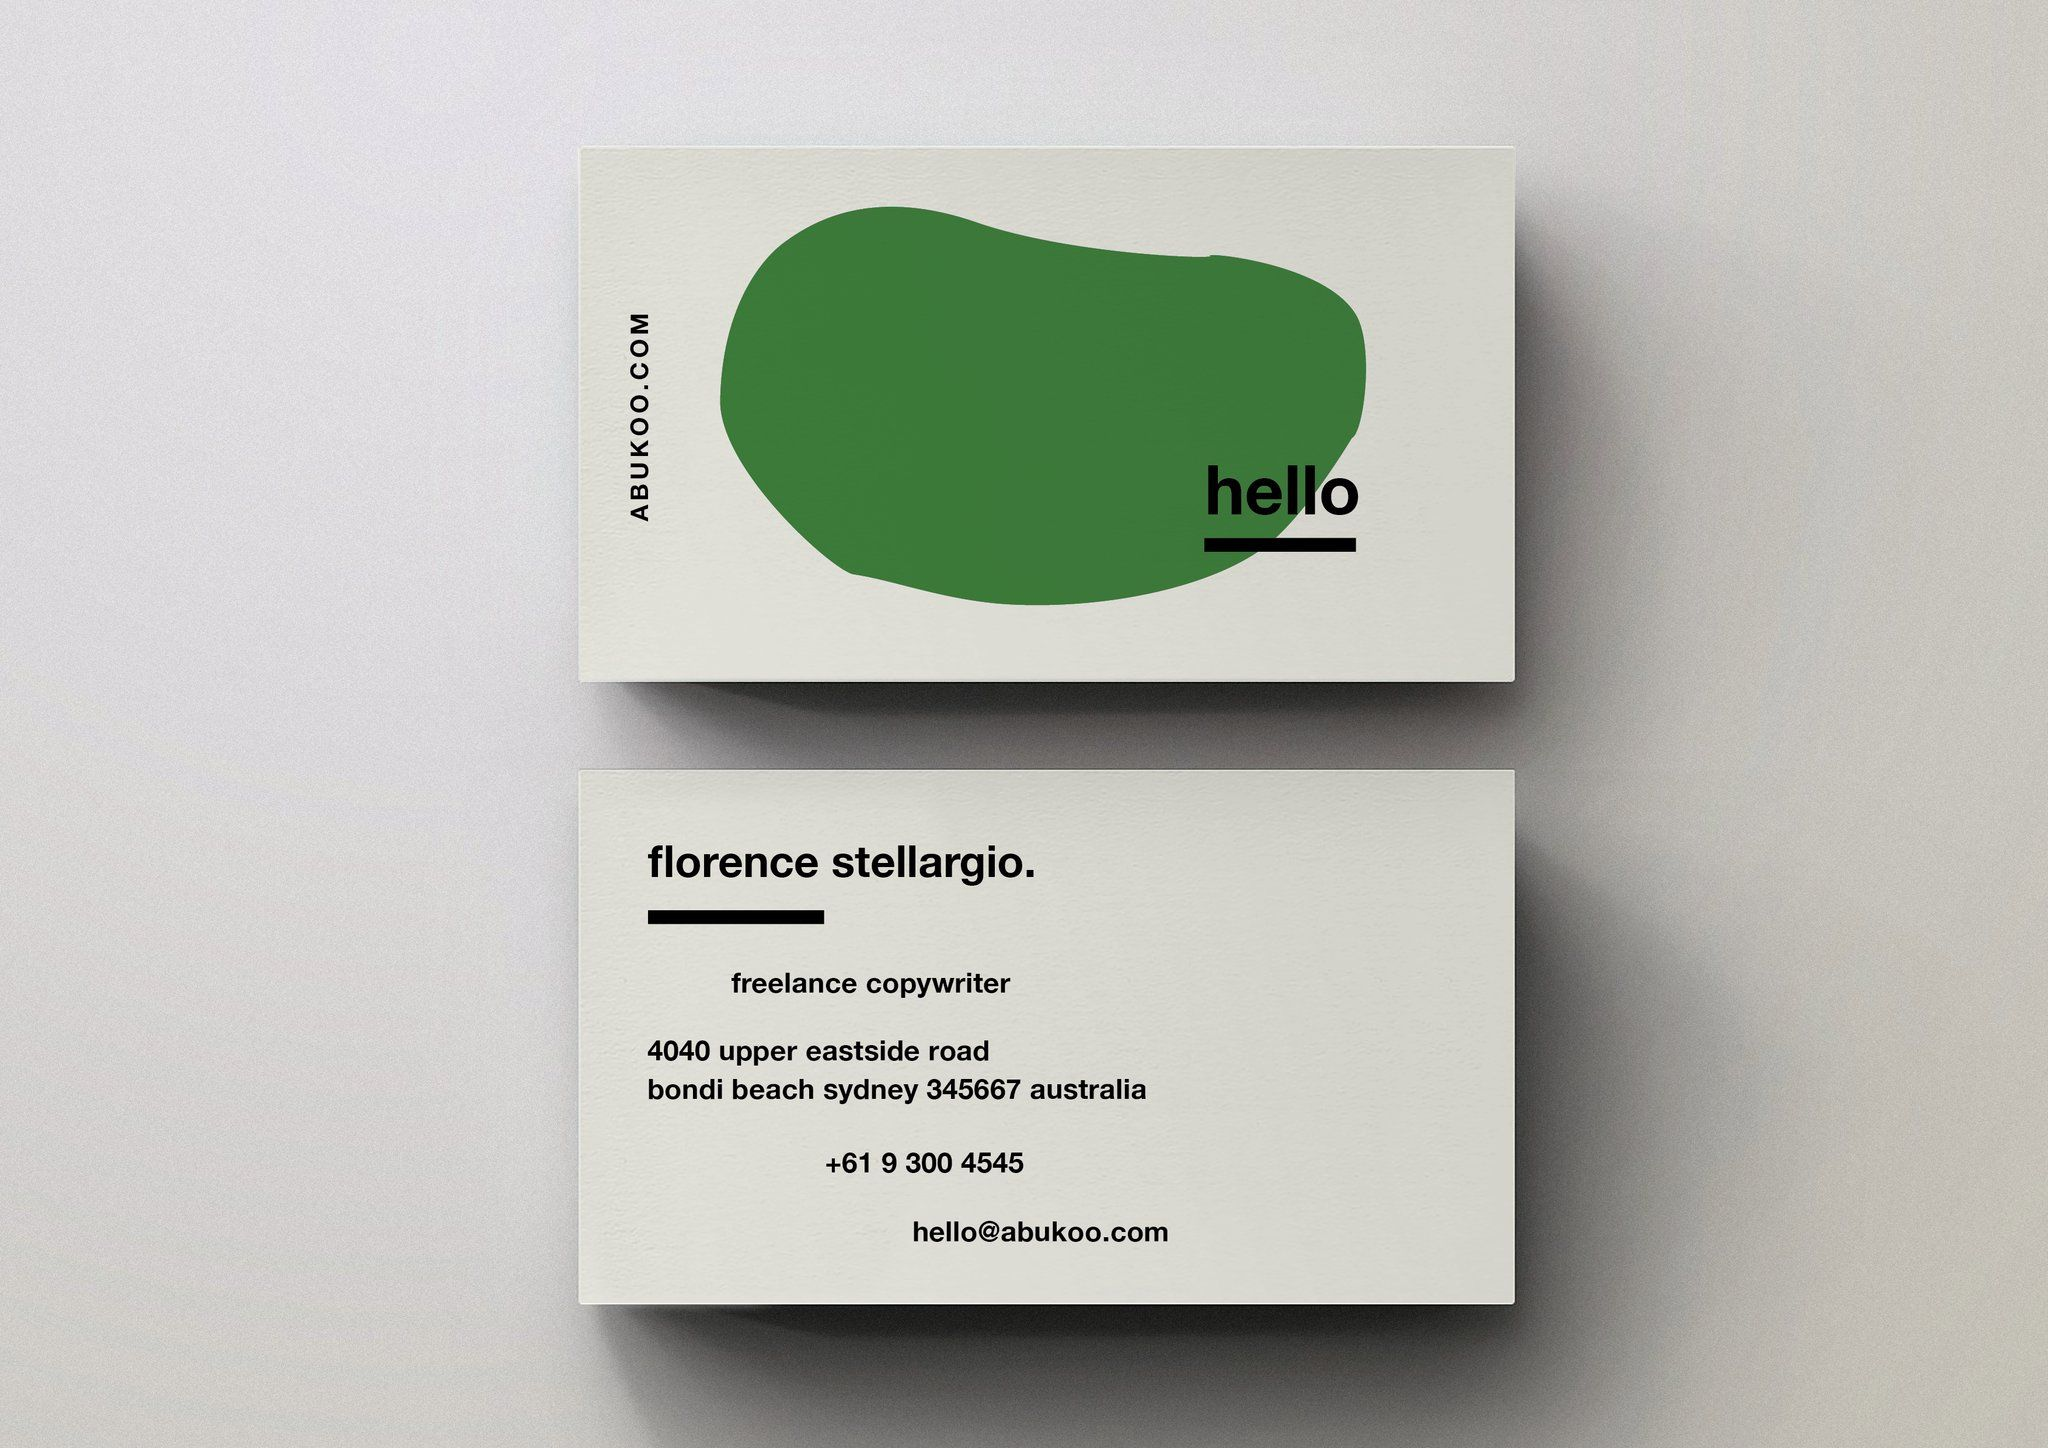 minimal business card template designs - Minimal Business Card